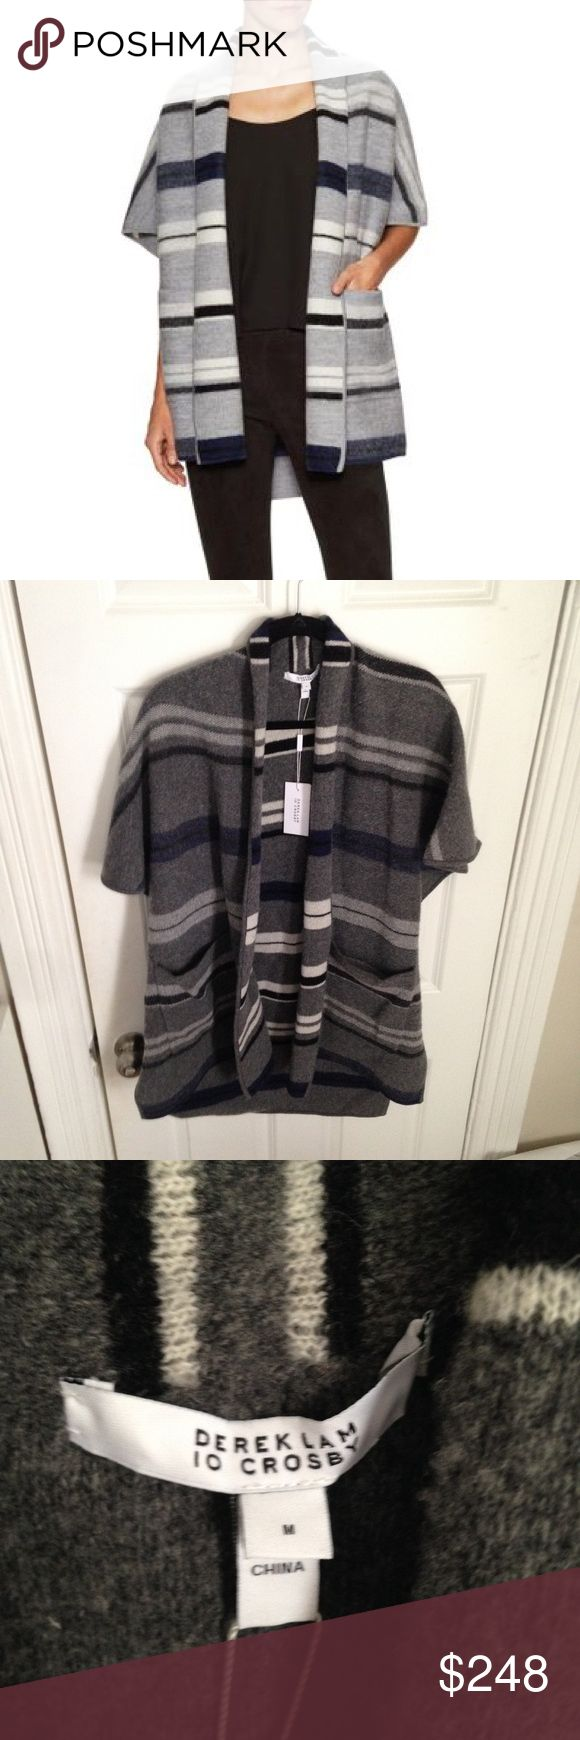 NWT Derek Lam Blanket Card wool cardigan medium Graphic stripes throughout Shawl collar Dolman sleeves Cape at back Tonal topstitching and panel seaming 100% wool  No trades, offers welcome. 10 Crosby Derek Lam Sweaters